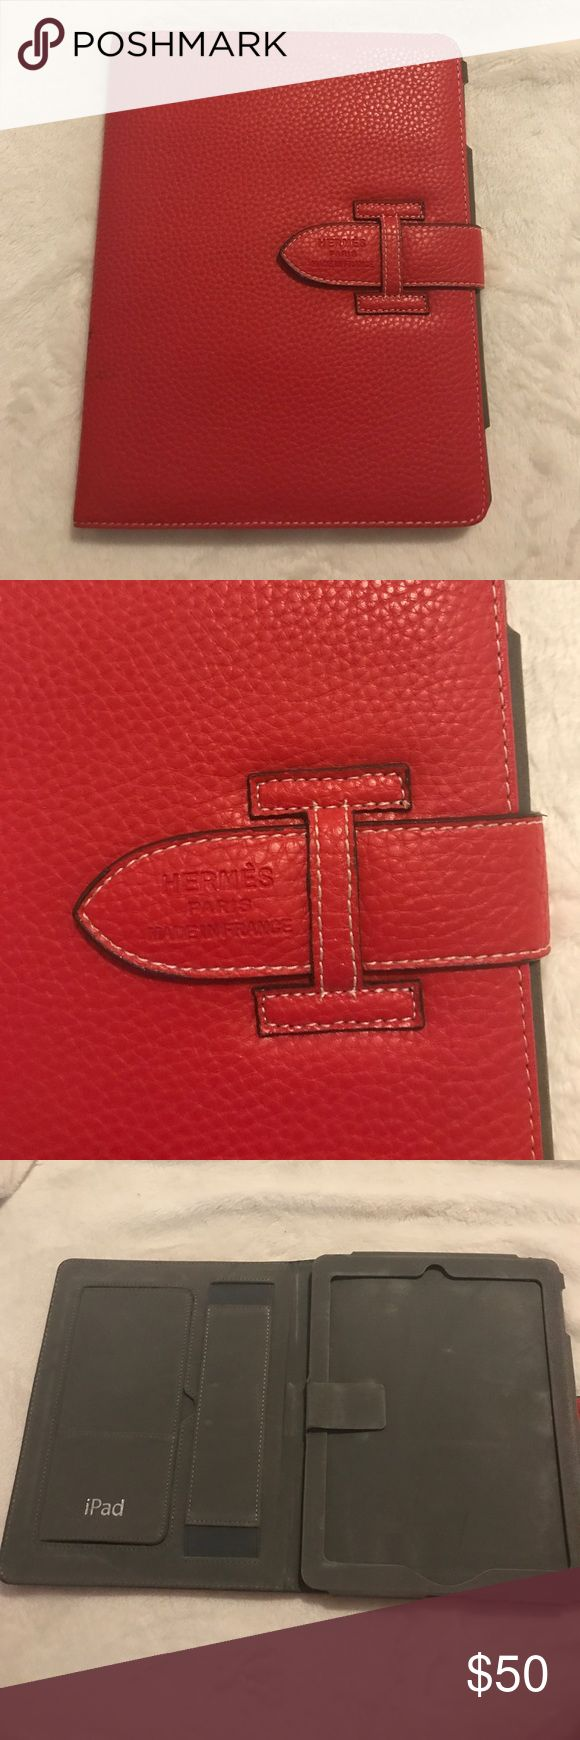 Hermes ipad case Red Hermes large ipad case Accessories Tablet Cases